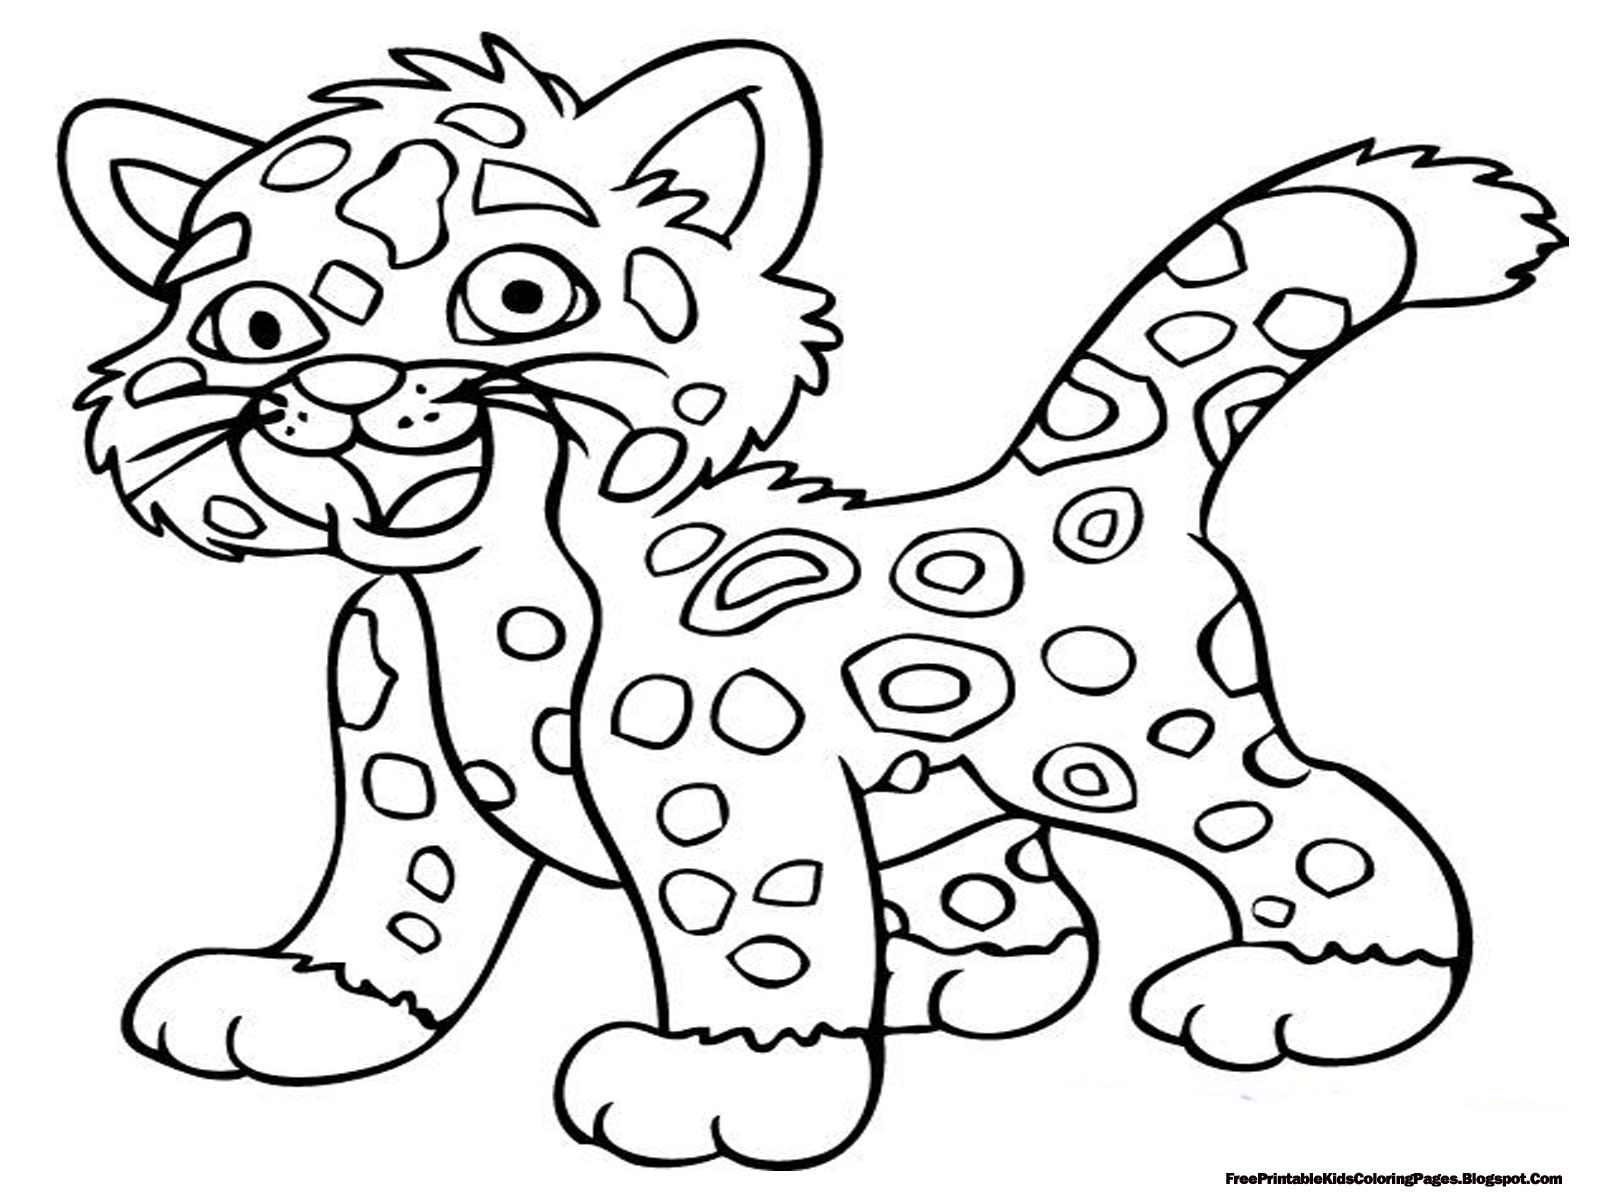 Coloring pitchers of animals - Printable Jaguar Coloring Pictures